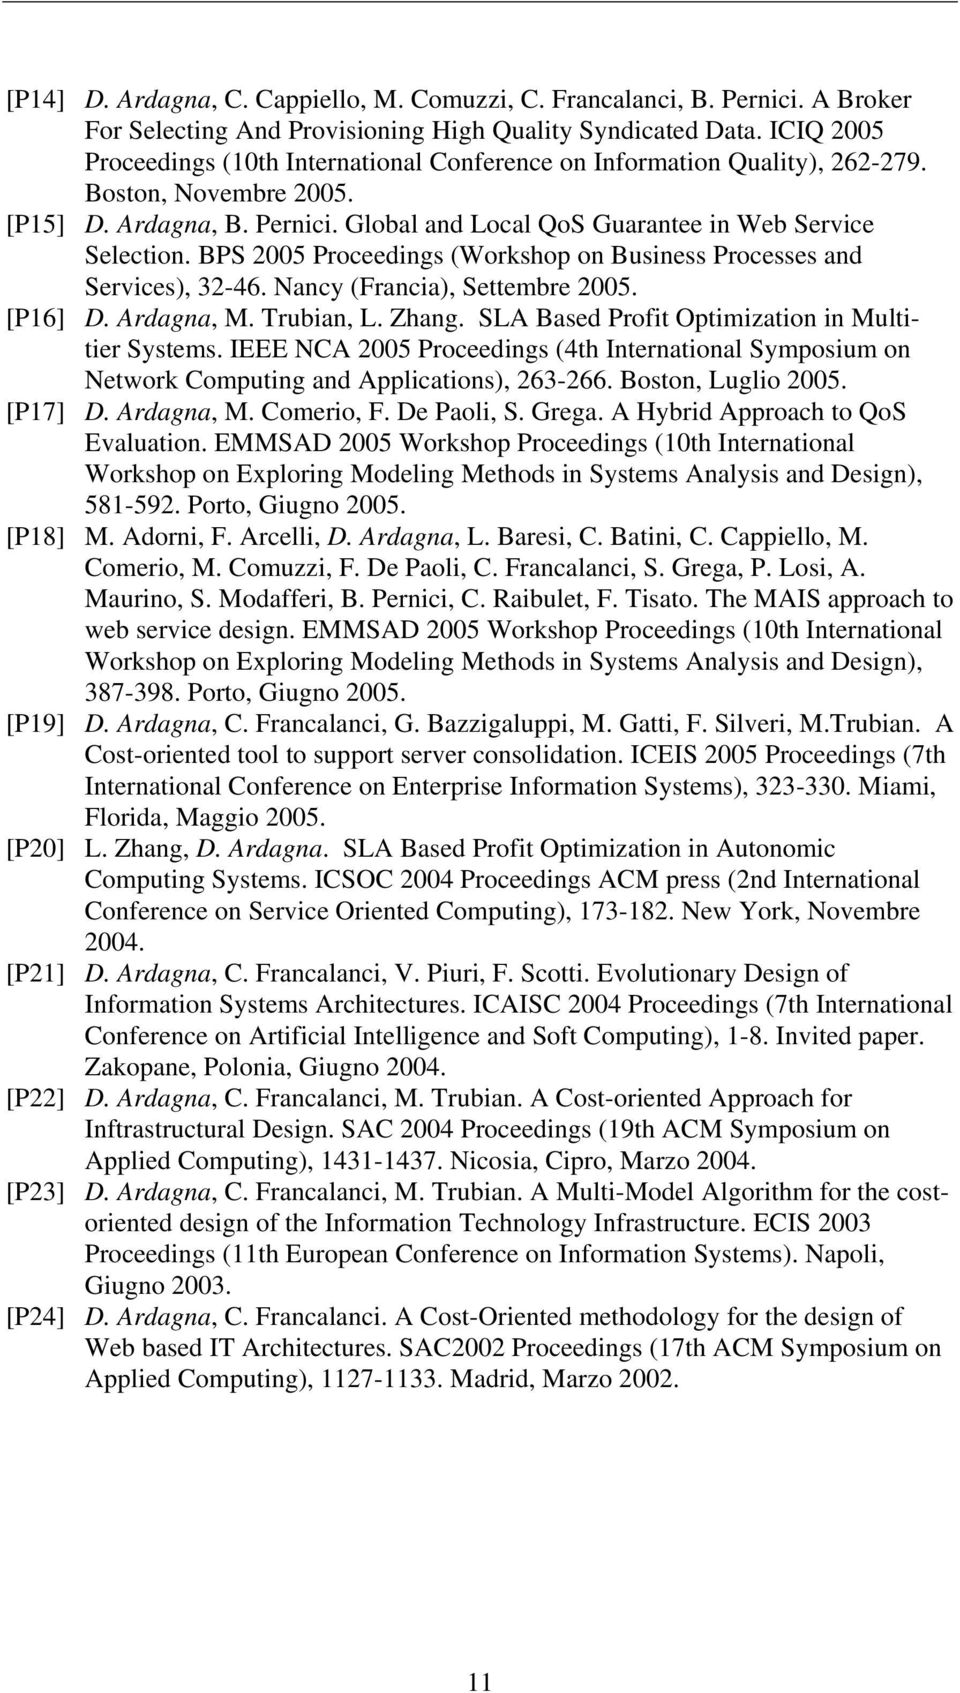 BPS 2005 Proceedings (Workshop on Business Processes and Services), 32-46. Nancy (Francia), Settembre 2005. [P16] D. Ardagna, M. Trubian, L. Zhang. SLA Based Profit Optimization in Multitier Systems.